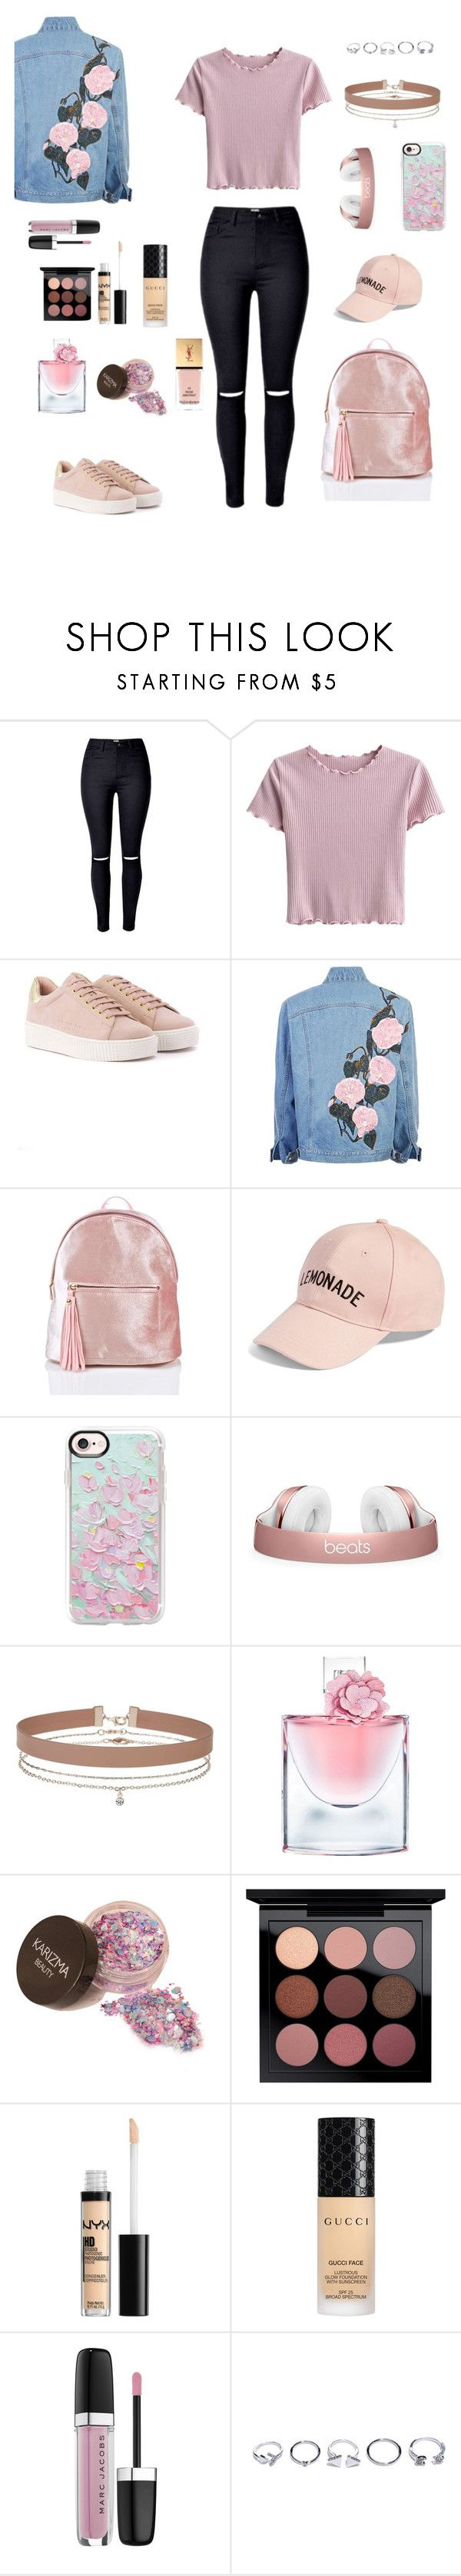 """""""Untitled #268"""" by natalyholly on Polyvore featuring Amici Accessories, Casetify, Miss Selfridge, Lancôme, Gucci, Marc Jacobs, GUESS and Yves Saint Laurent"""